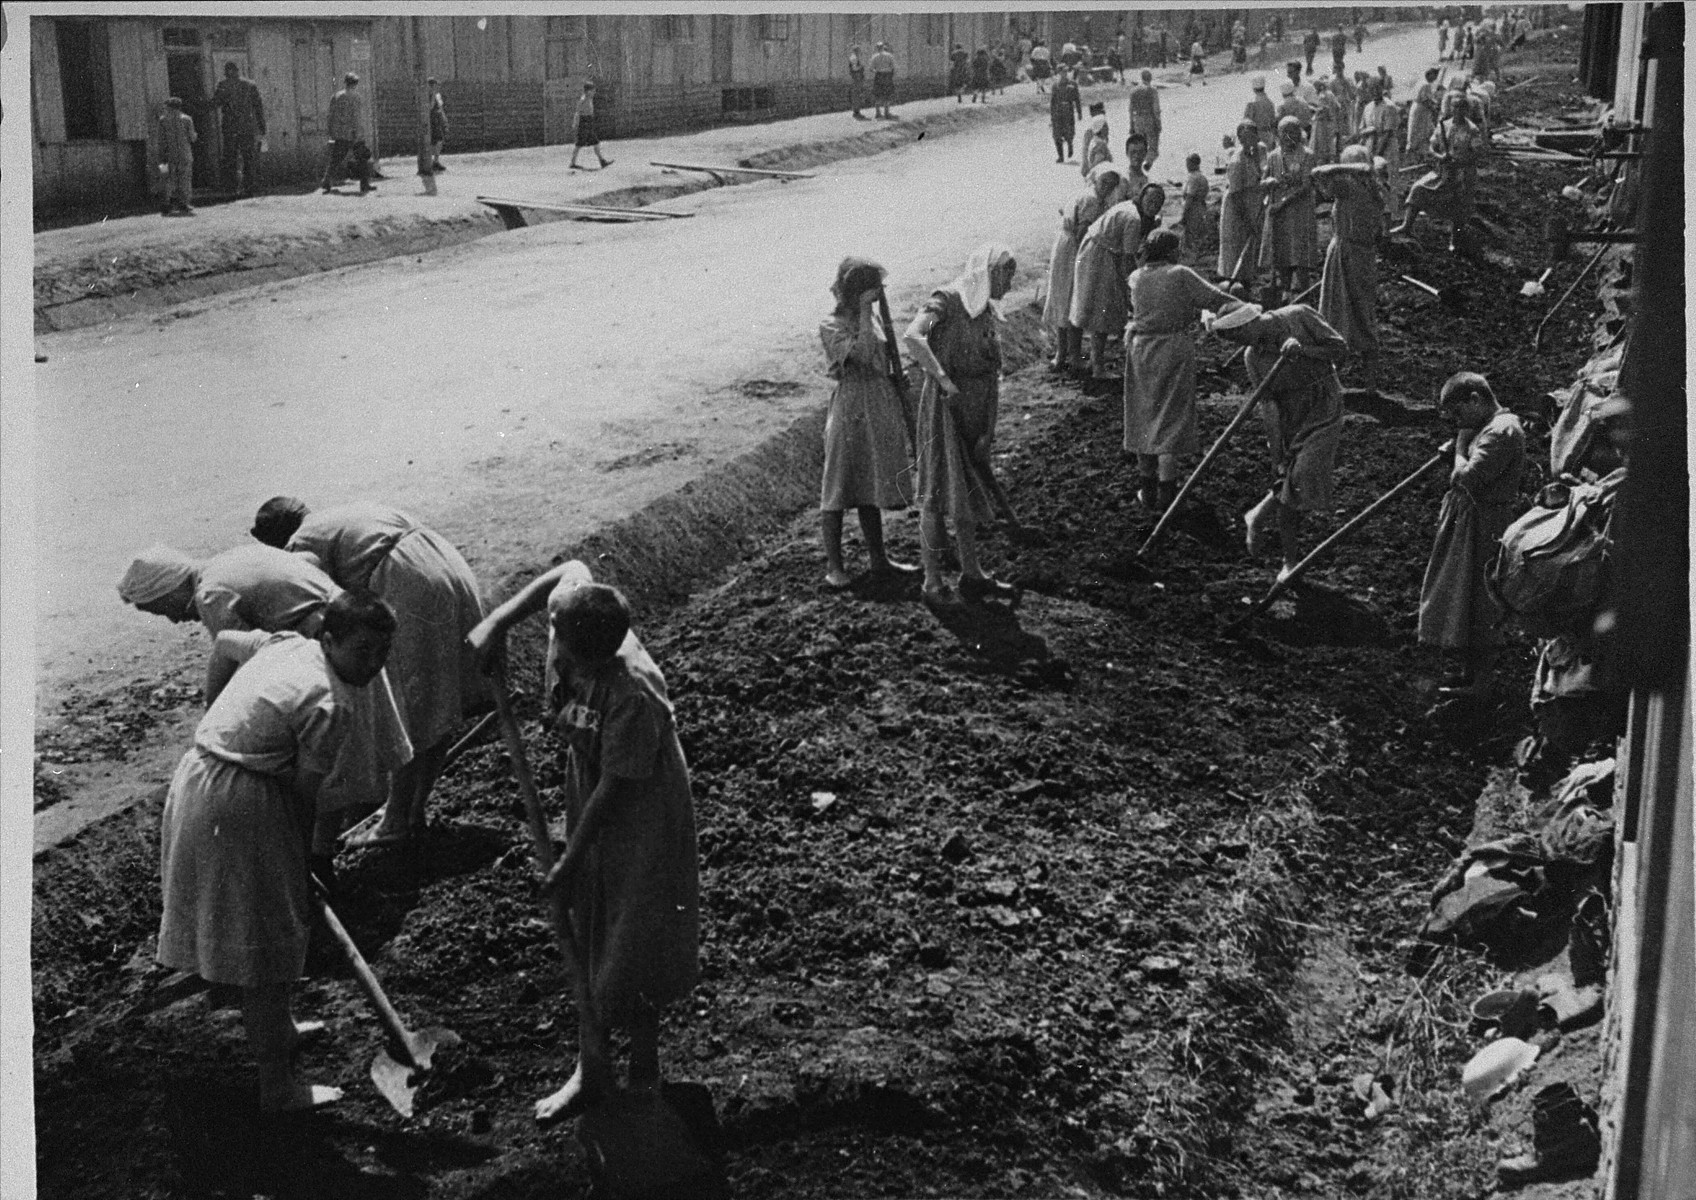 Jewish women at forced labor in the Plaszow labor camp.